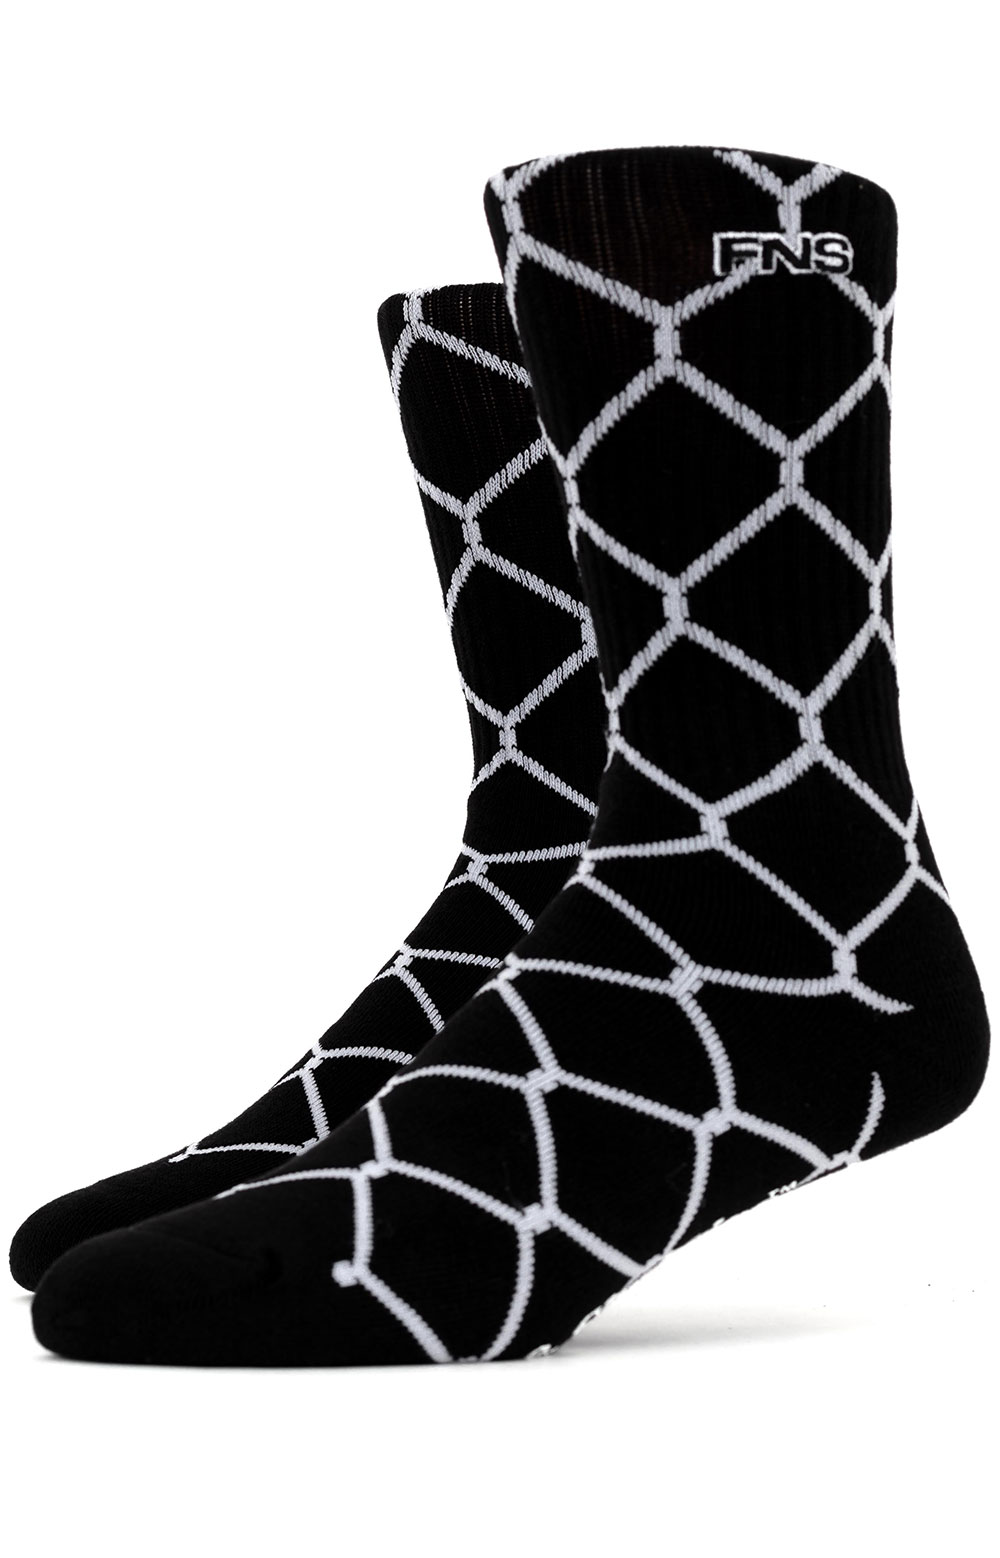 Chain Link Socks - Black